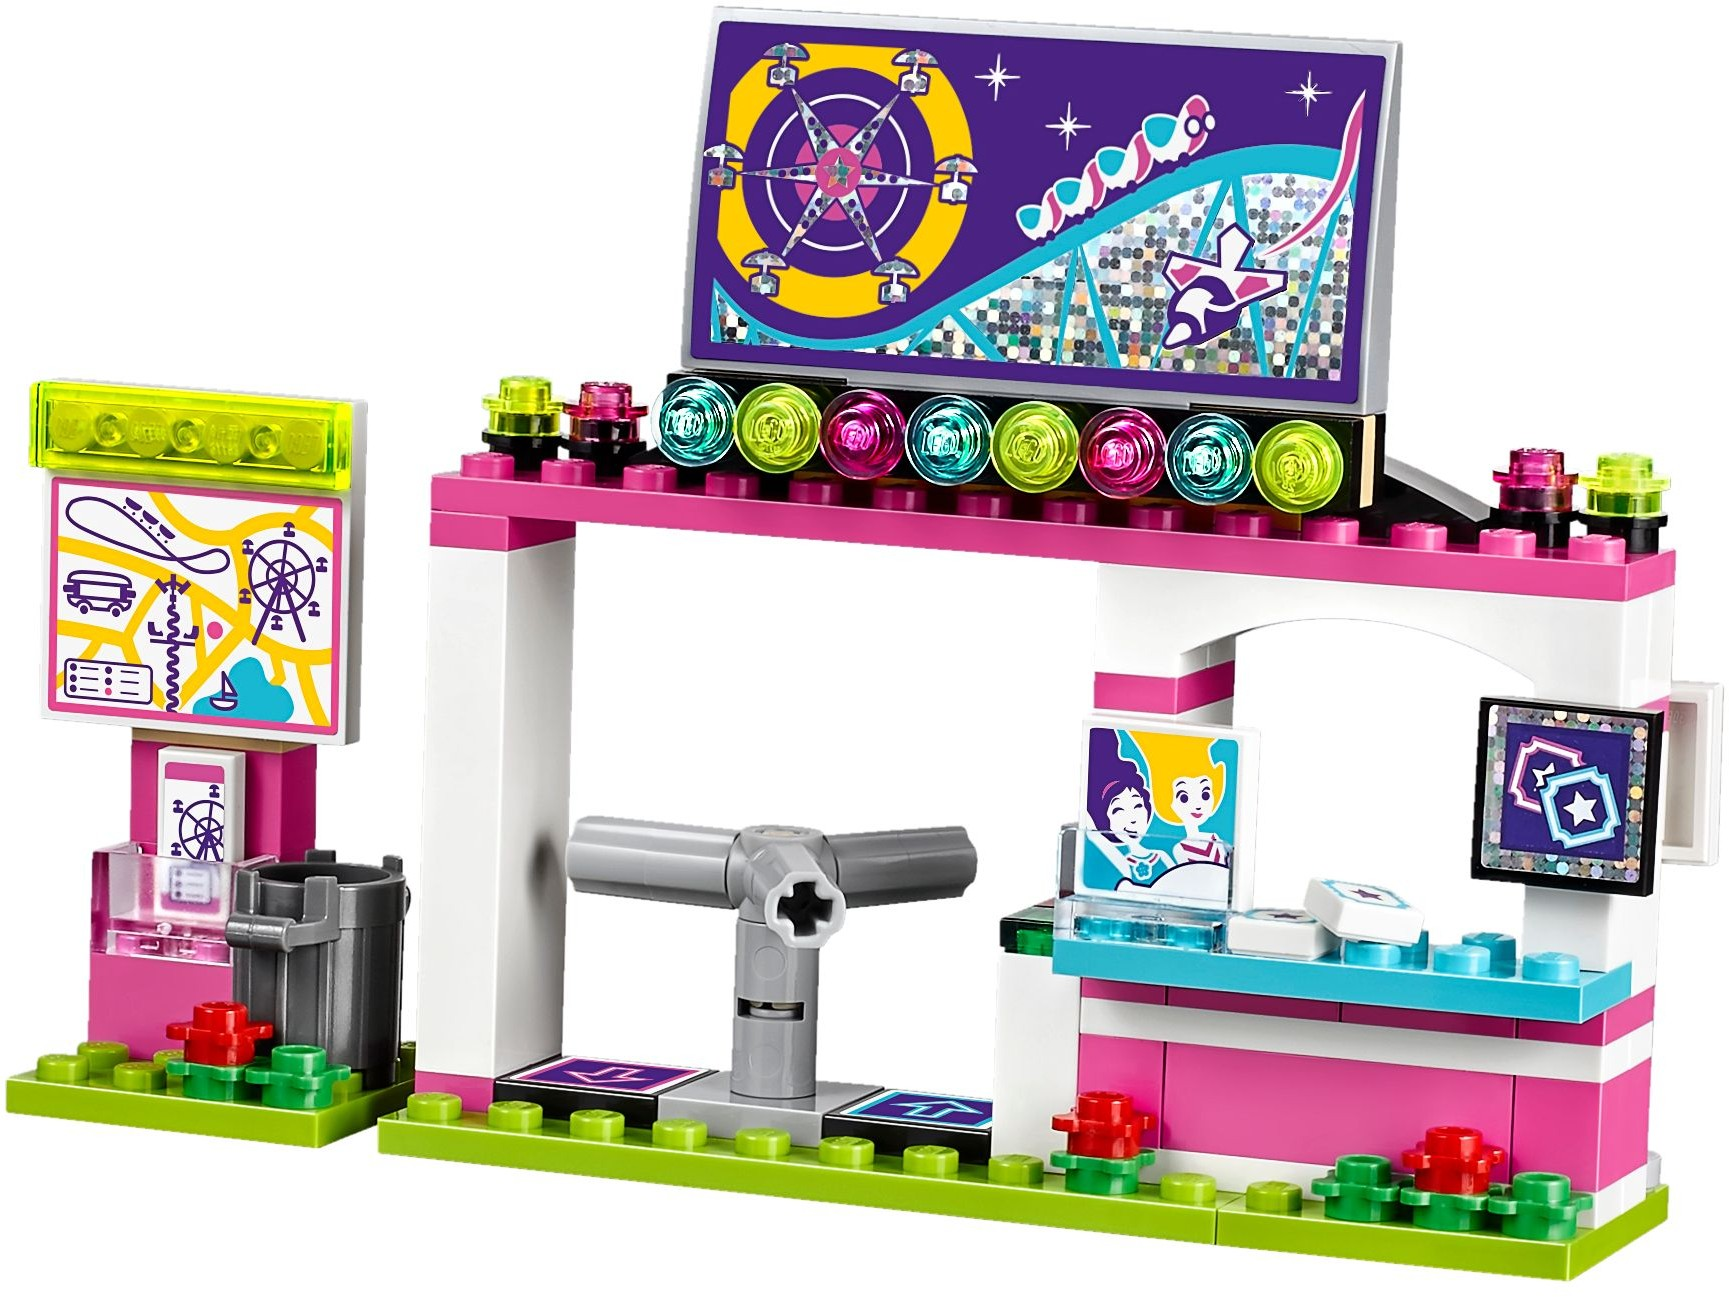 lego friends amusement park roller coaster instructions